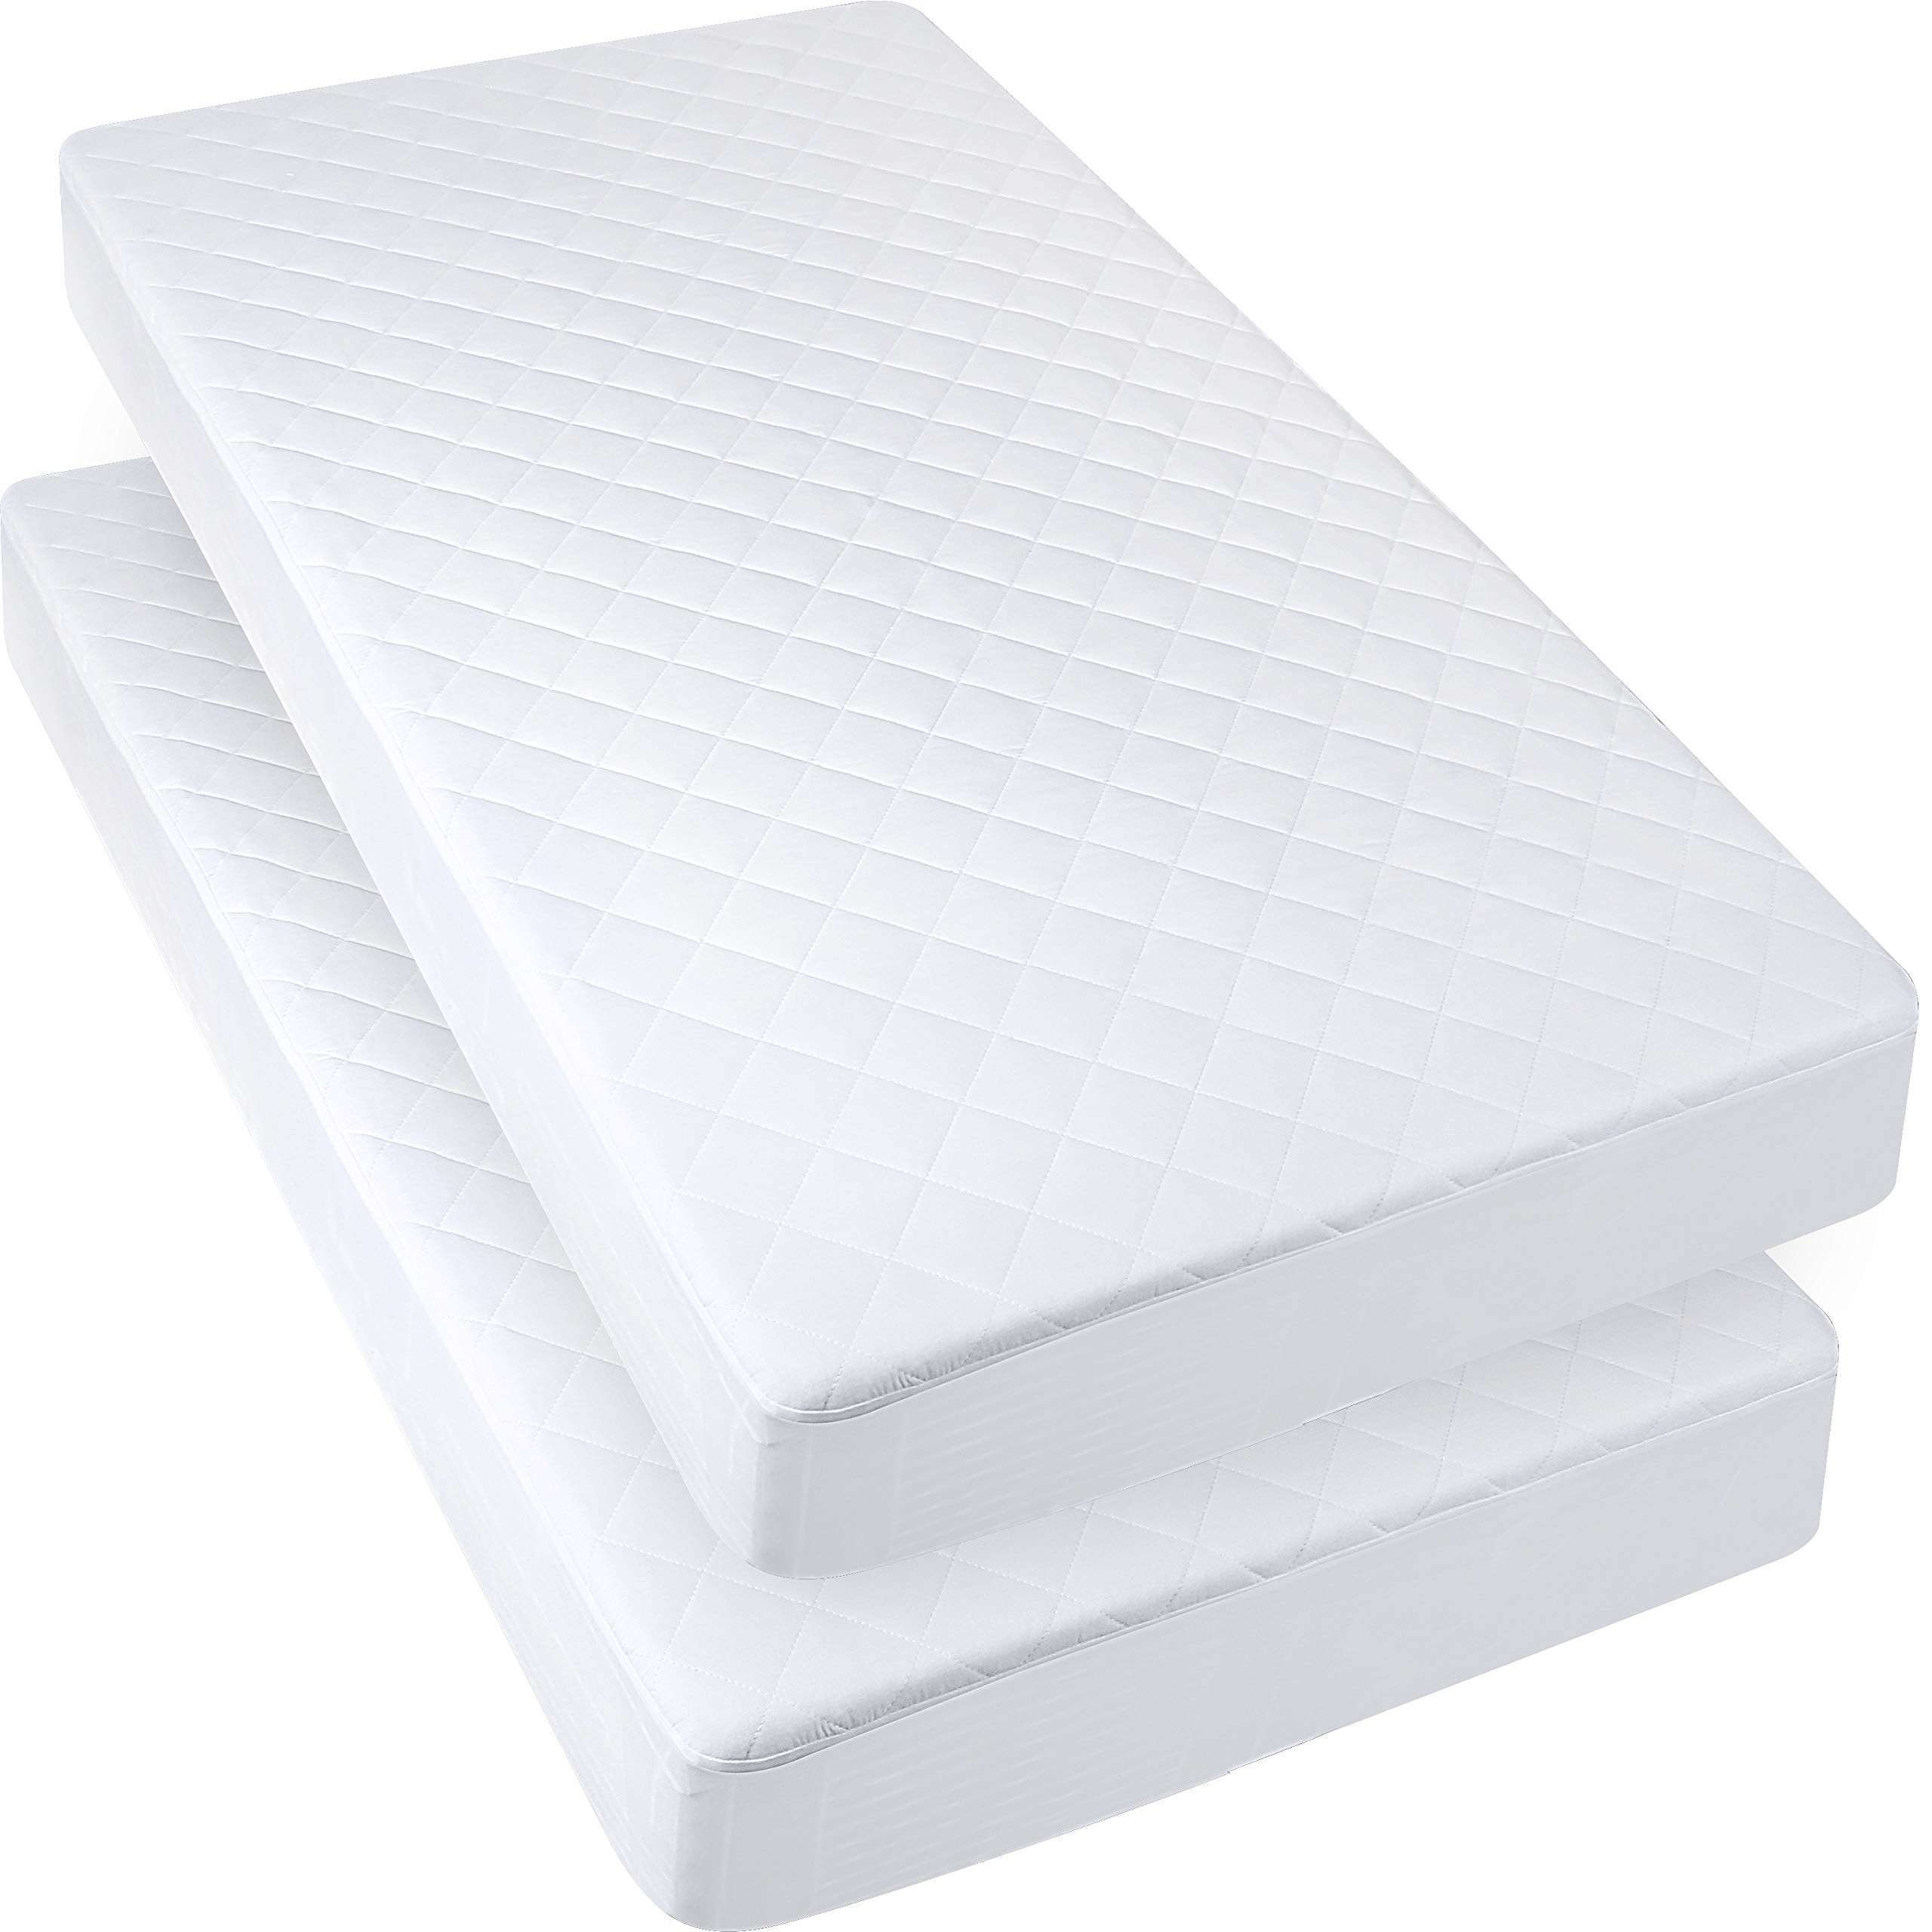 Cot Bed Fitted Sheets 2 Pack Cot Bed Baby Sheet Mattress Cover Soft 70x140cm for